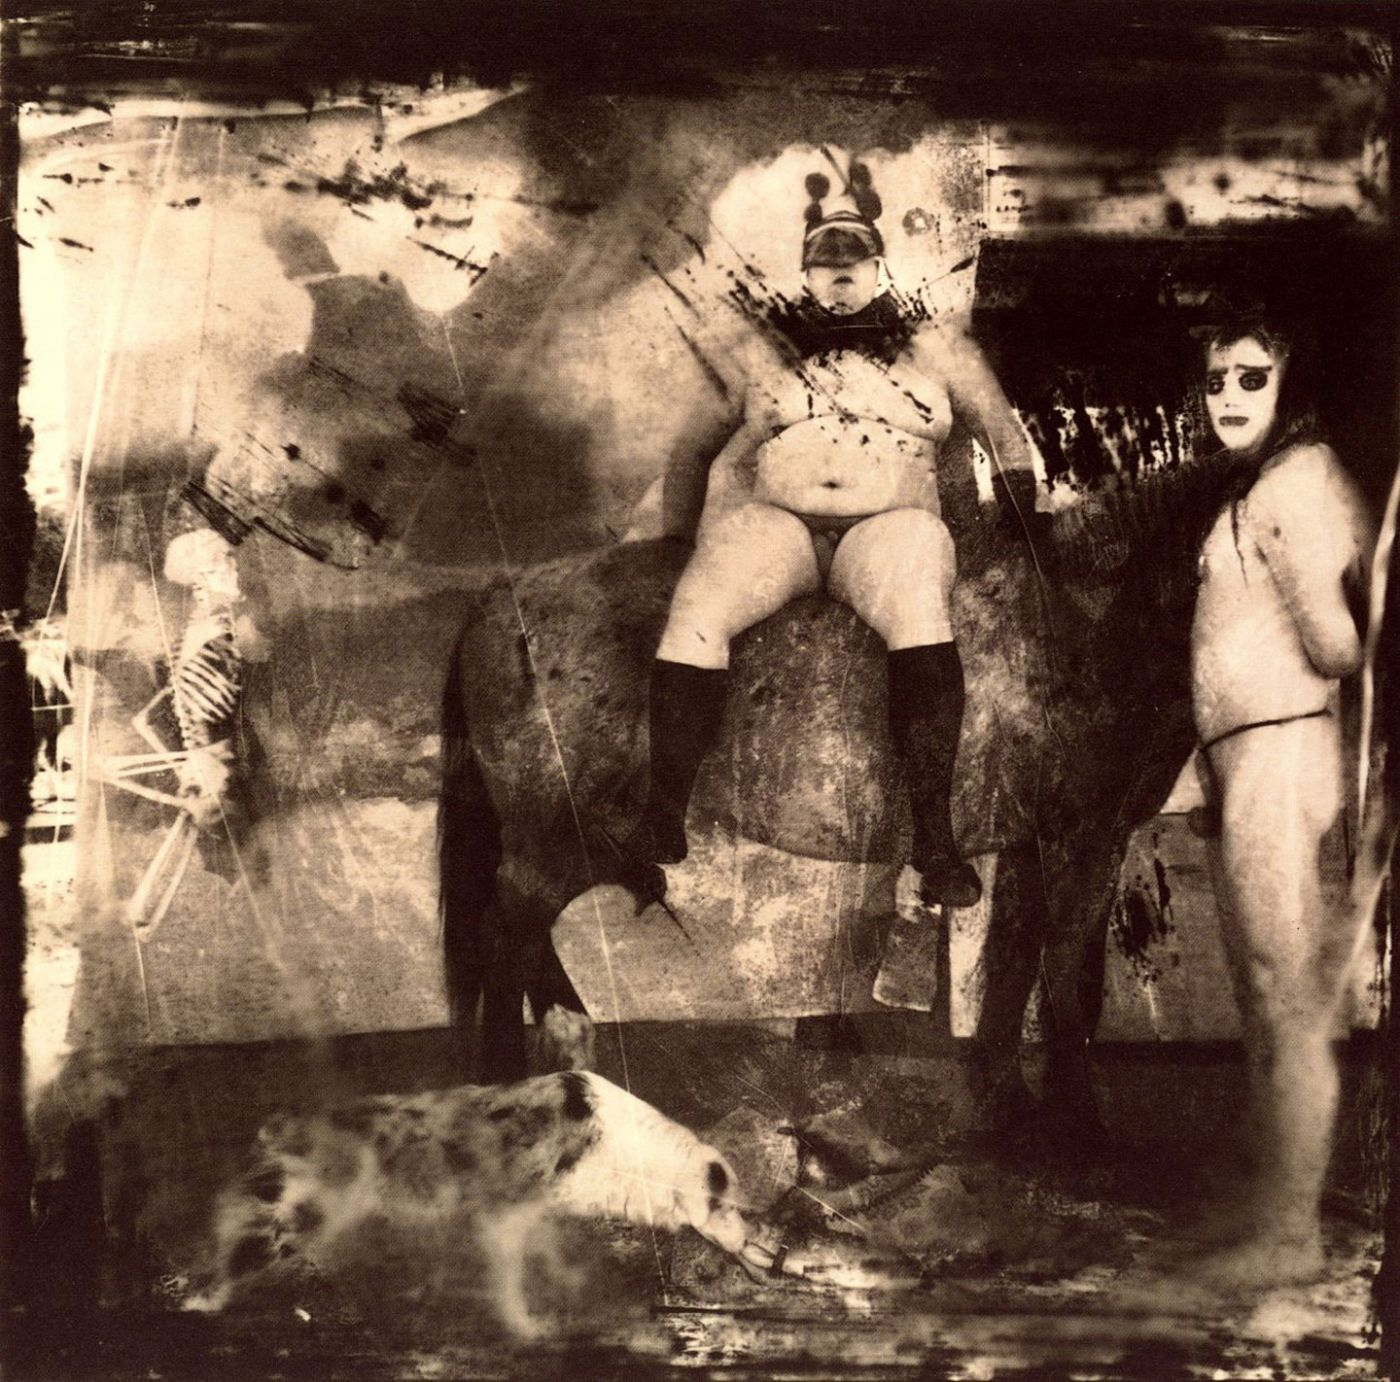 Joel-Peter Witkin: Gods of Earth and Heaven (Second Edition) [IMPERFECT]